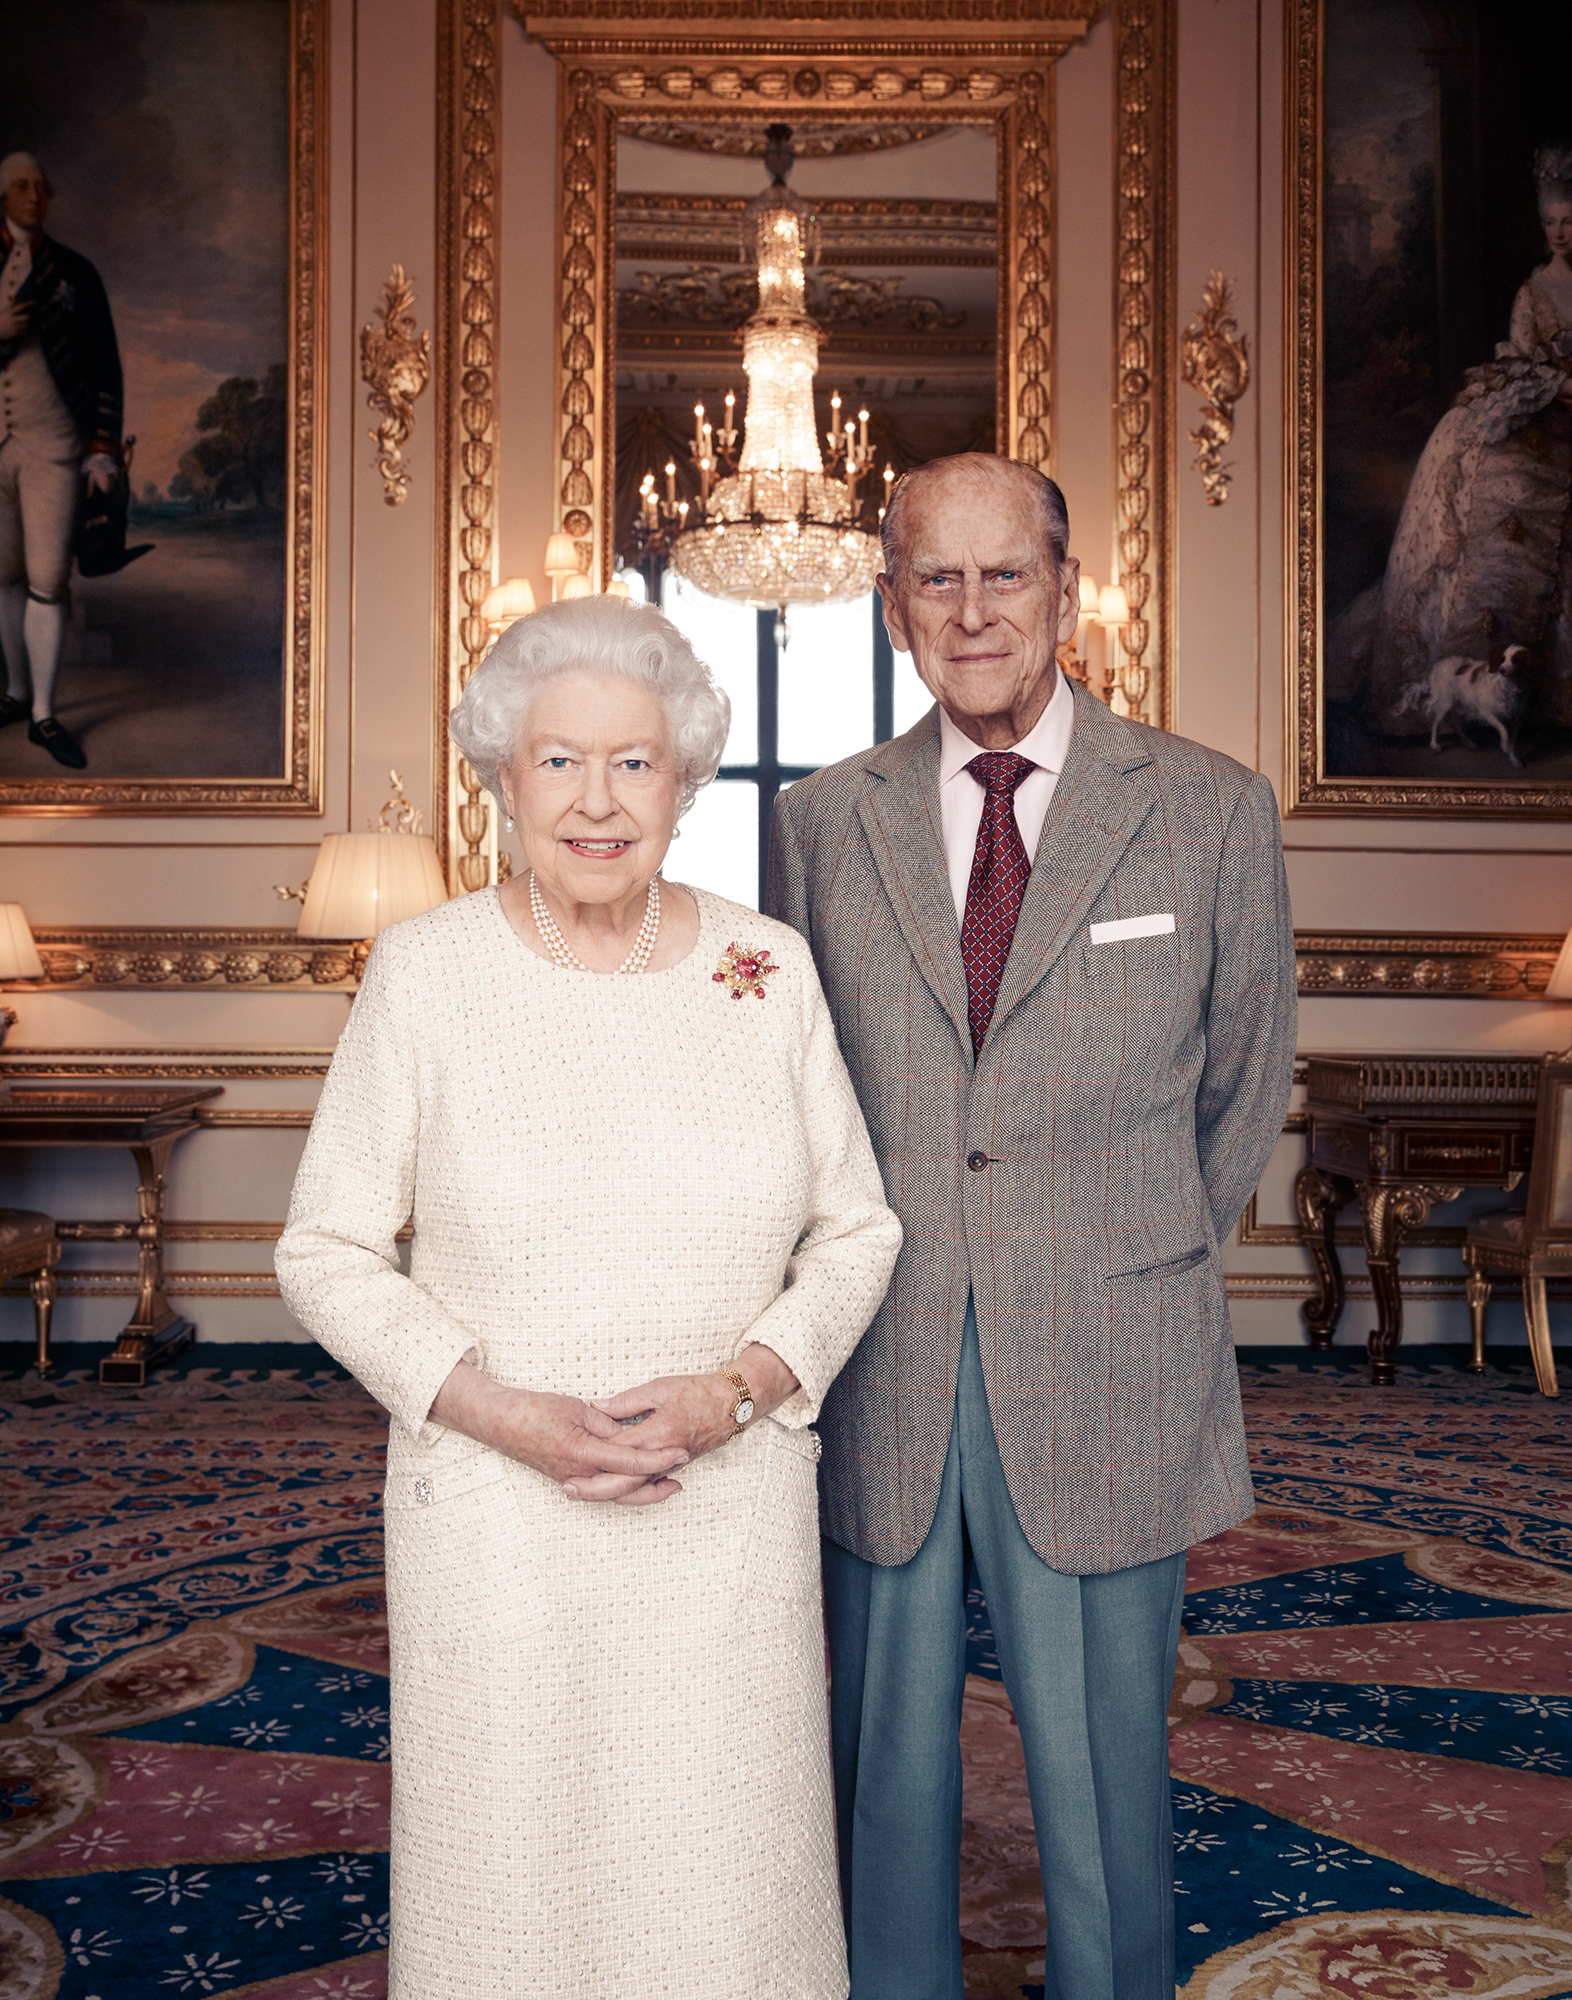 The Look of Love! Queen Elizabeth and Prince Philip Share 70th Anniversary Photo